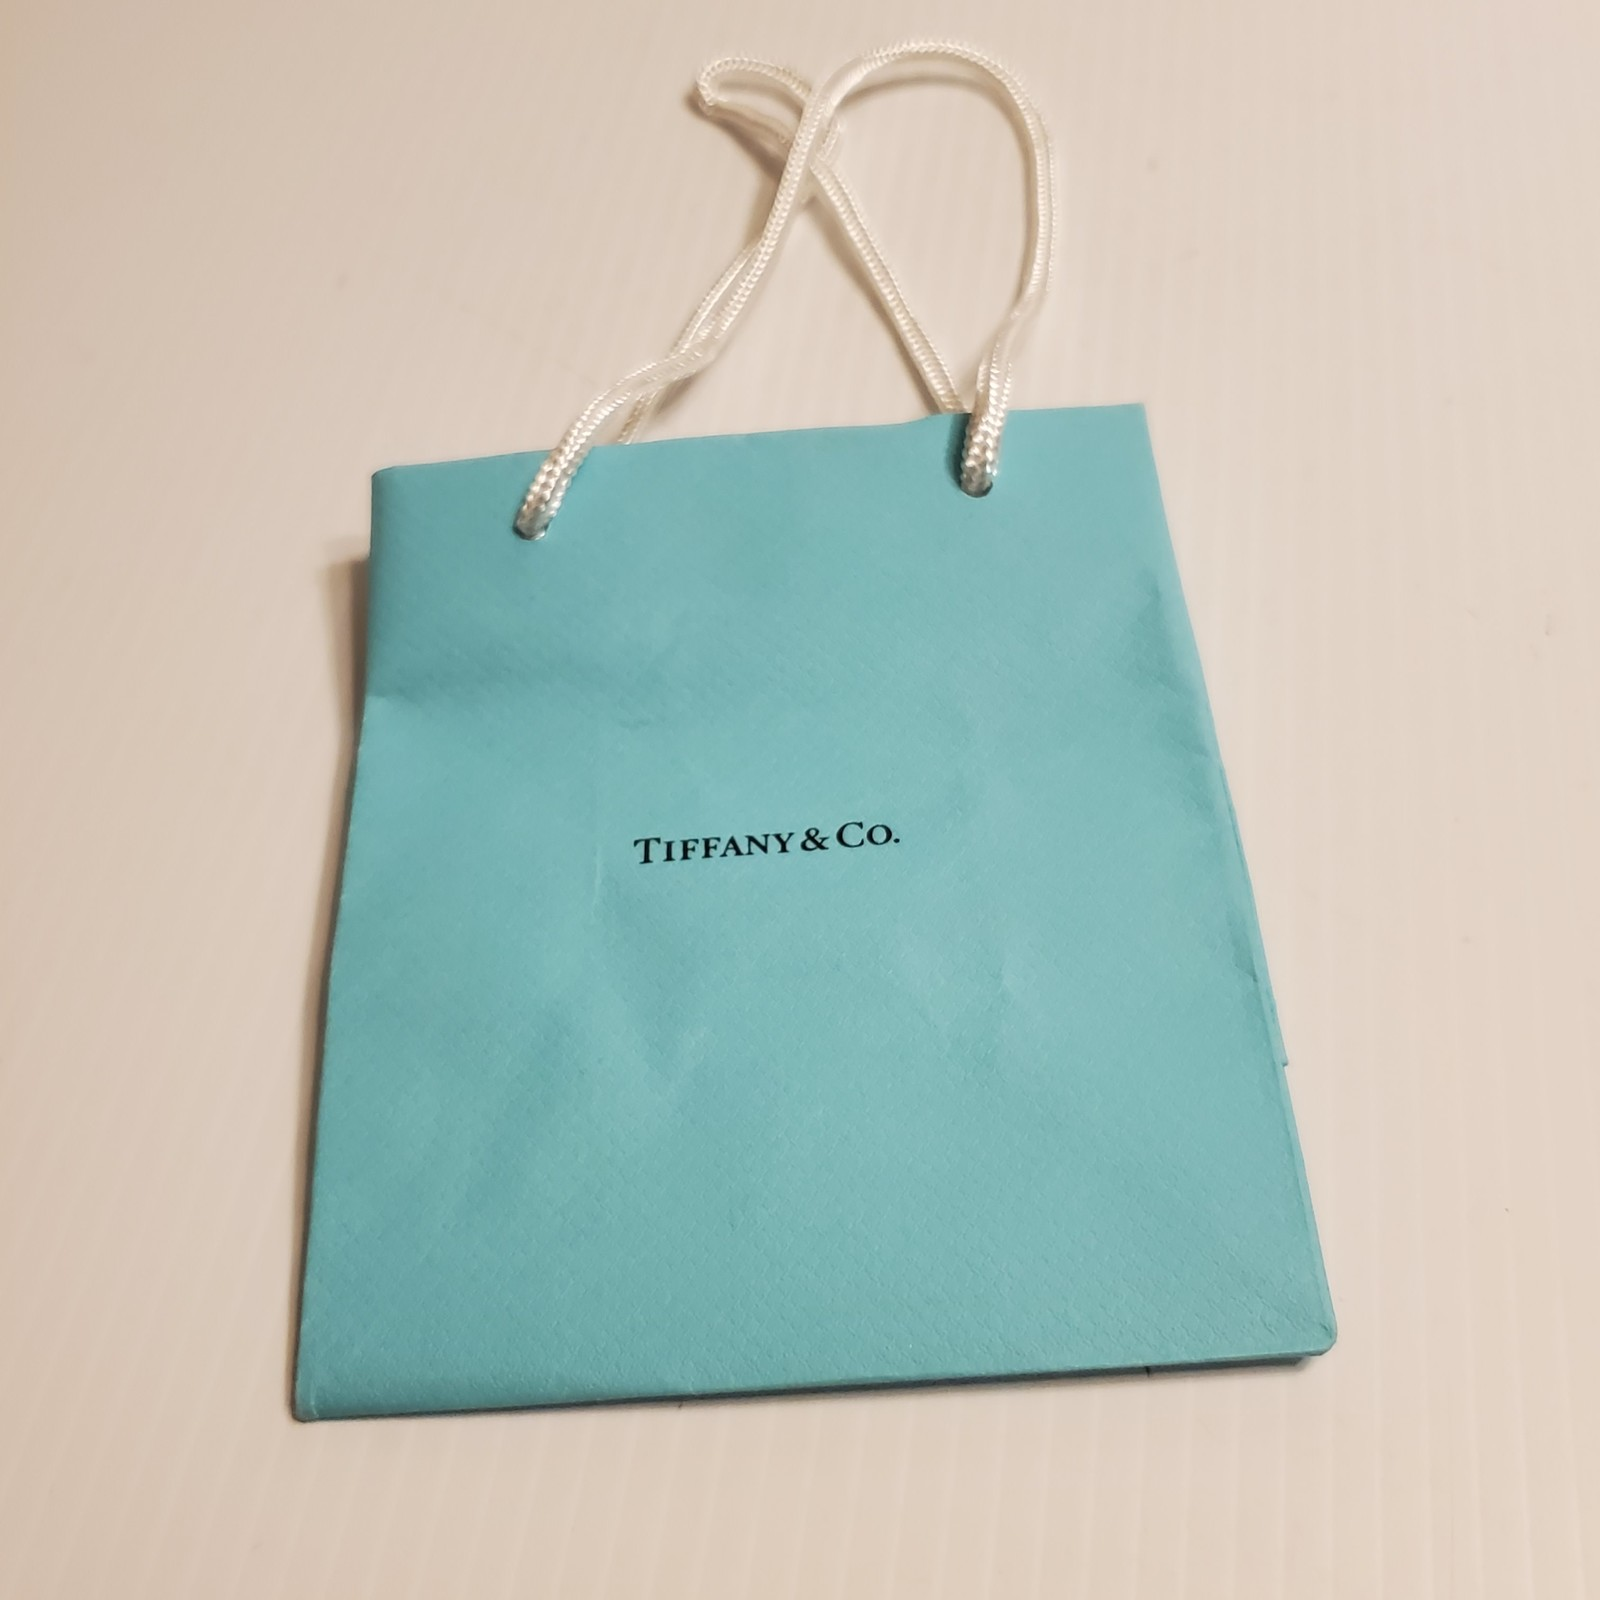 Primary image for Tiffany & Co paper  gift bag. Very good shape. Teal 6x5x3 Lot 1